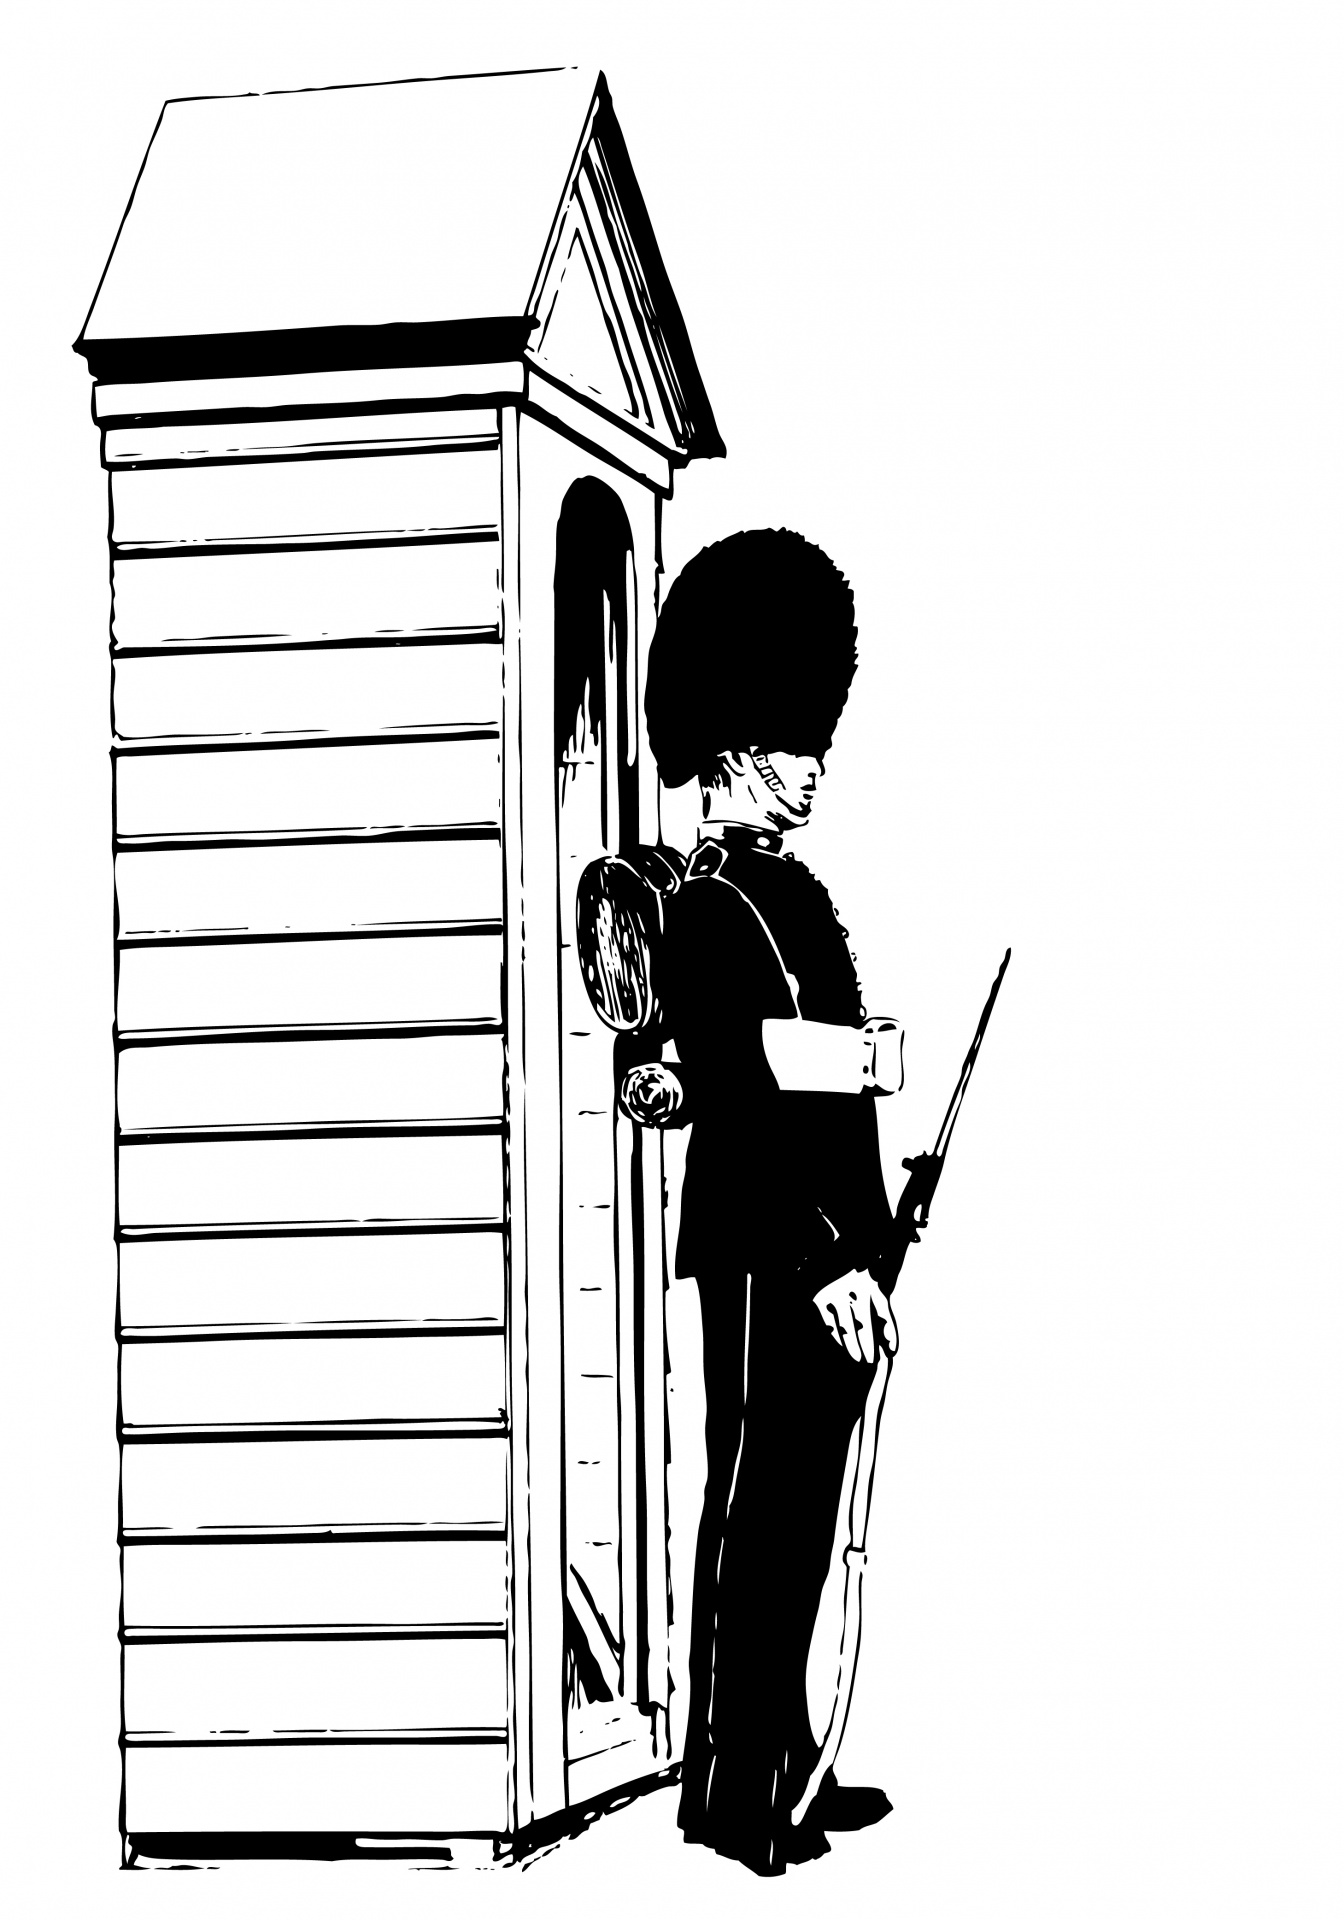 Guard clipart. Sentry illustration free stock